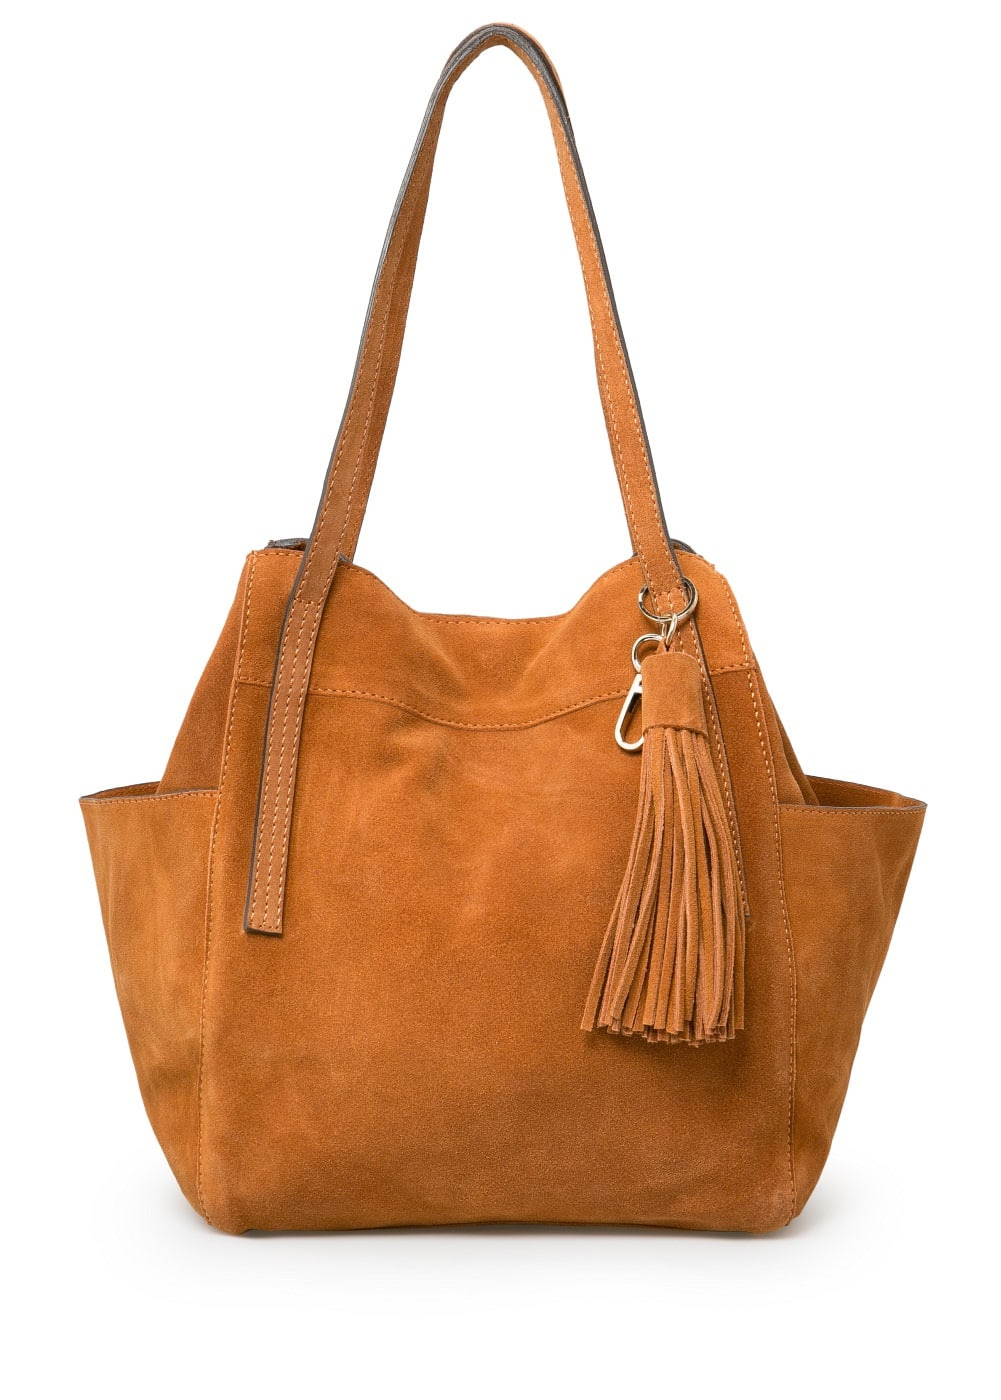 Tassel hobo bag